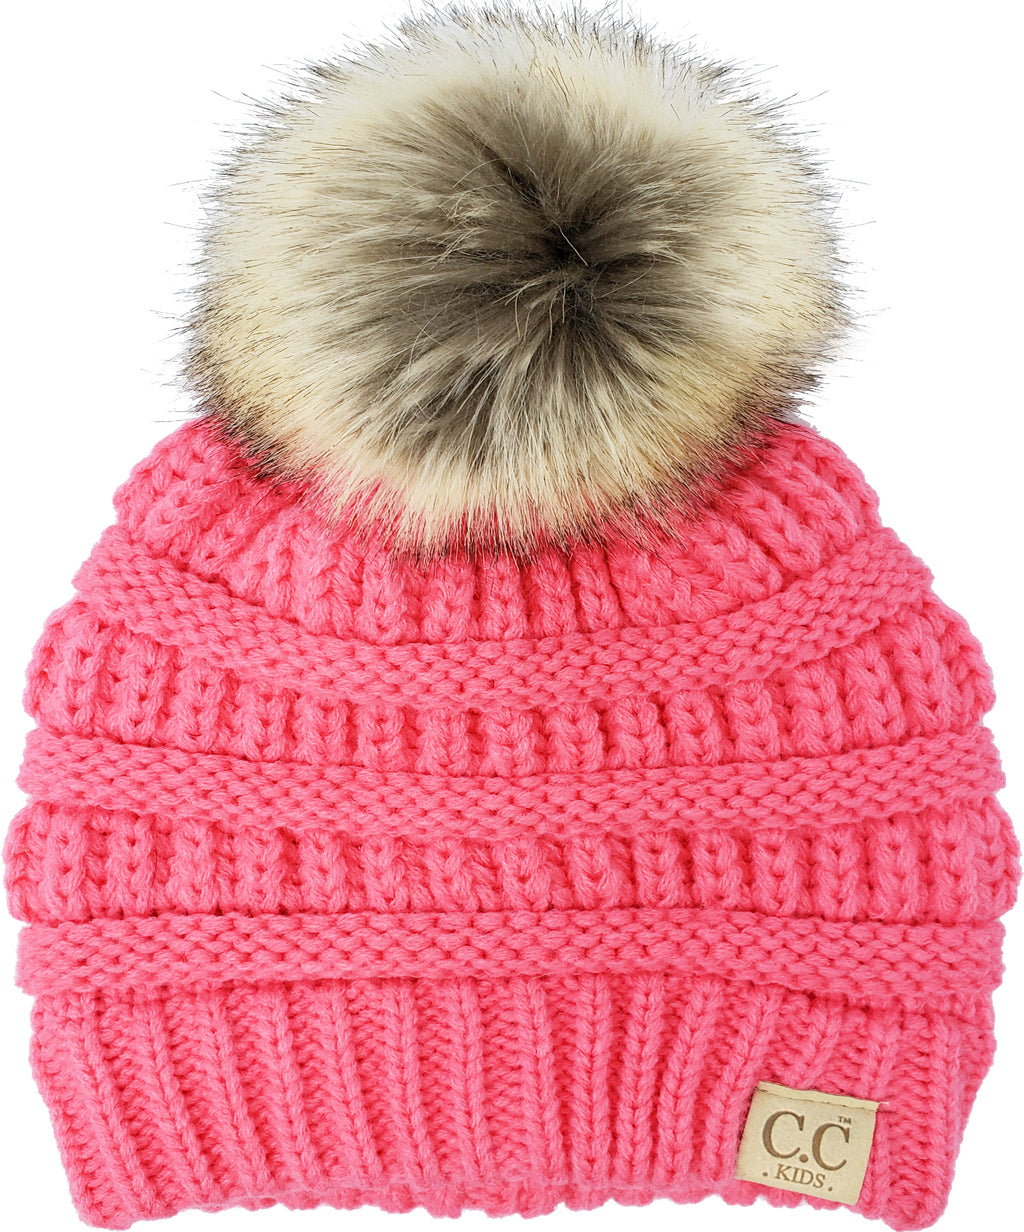 C.C. Kid's Classic Fit Cable Knit Beanie W/ Pom - Faux Fur